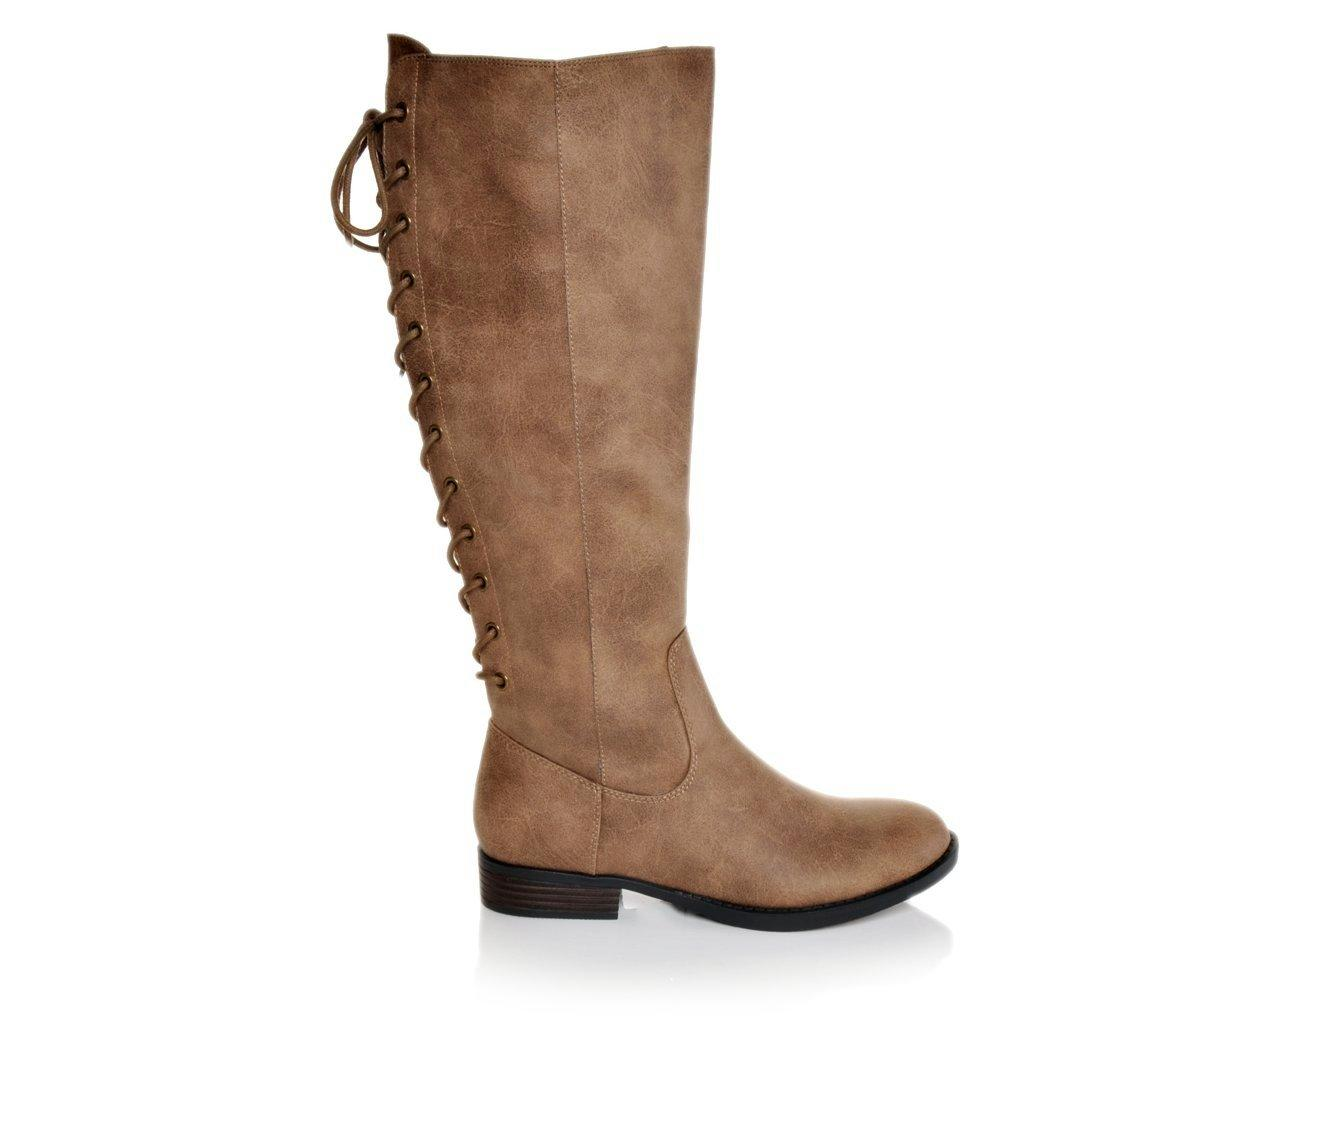 Women's Riding Boots | Shoe Carnival